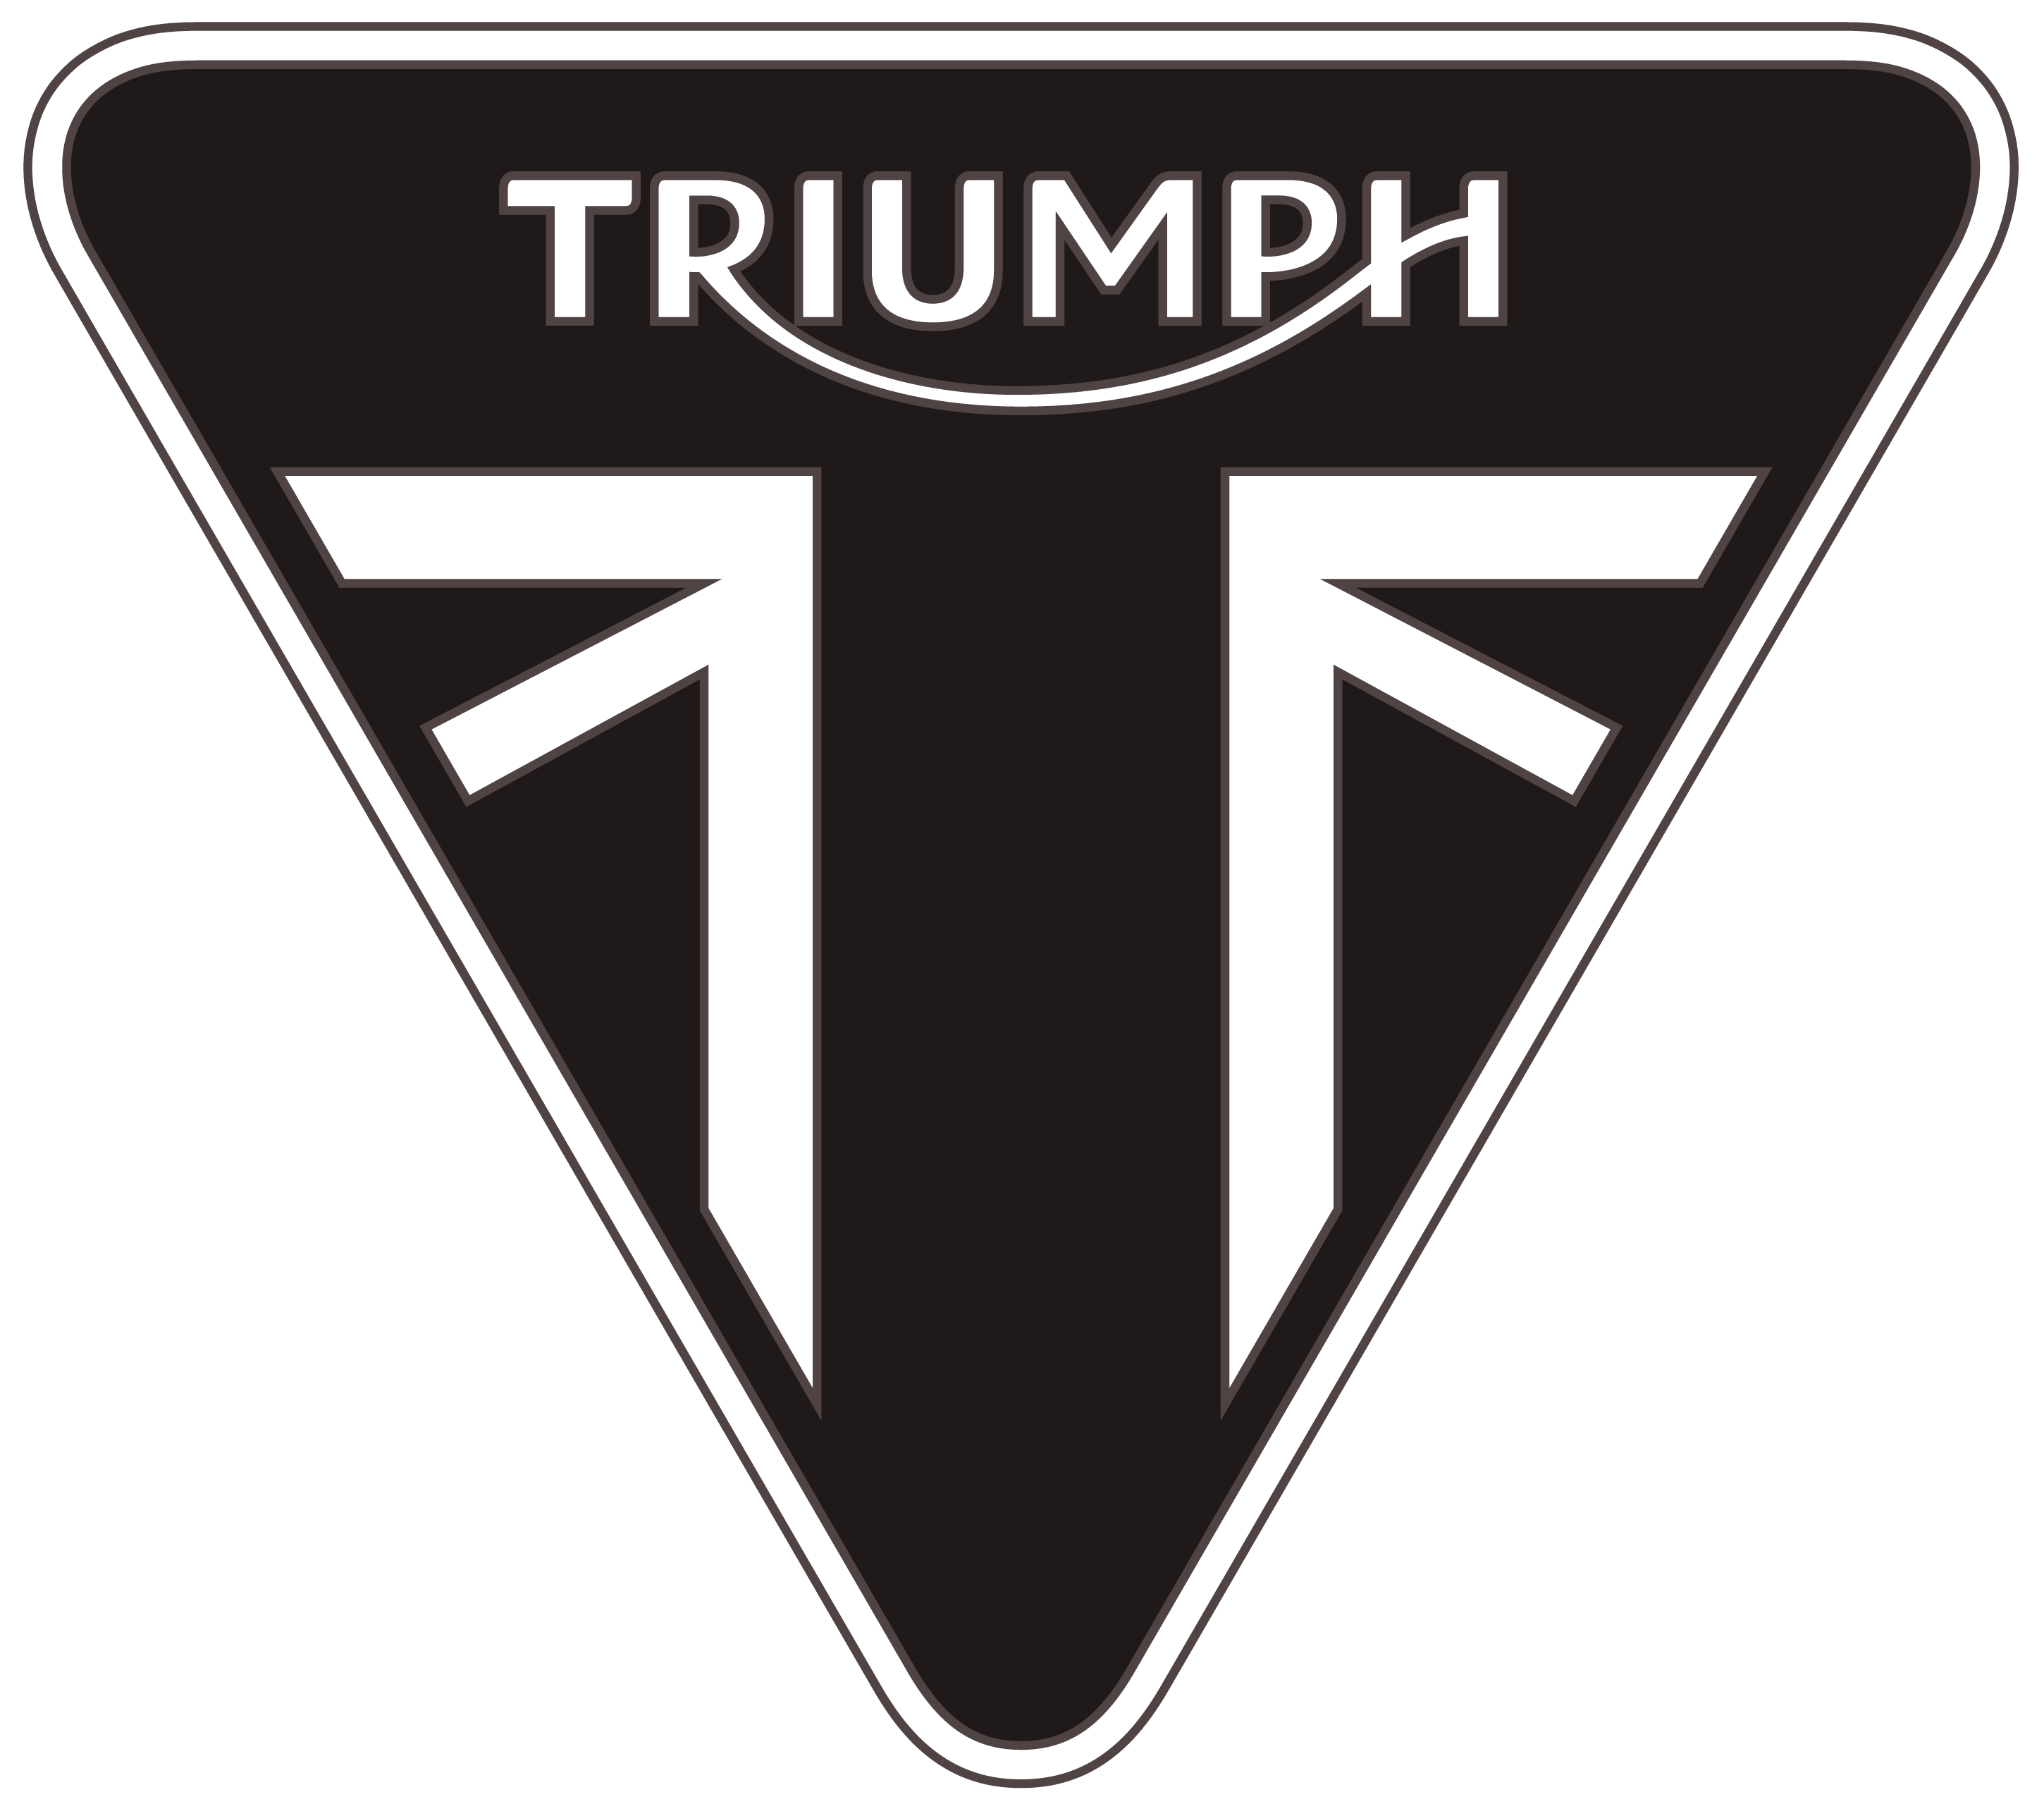 Triumph Logo Motorcycle Brands